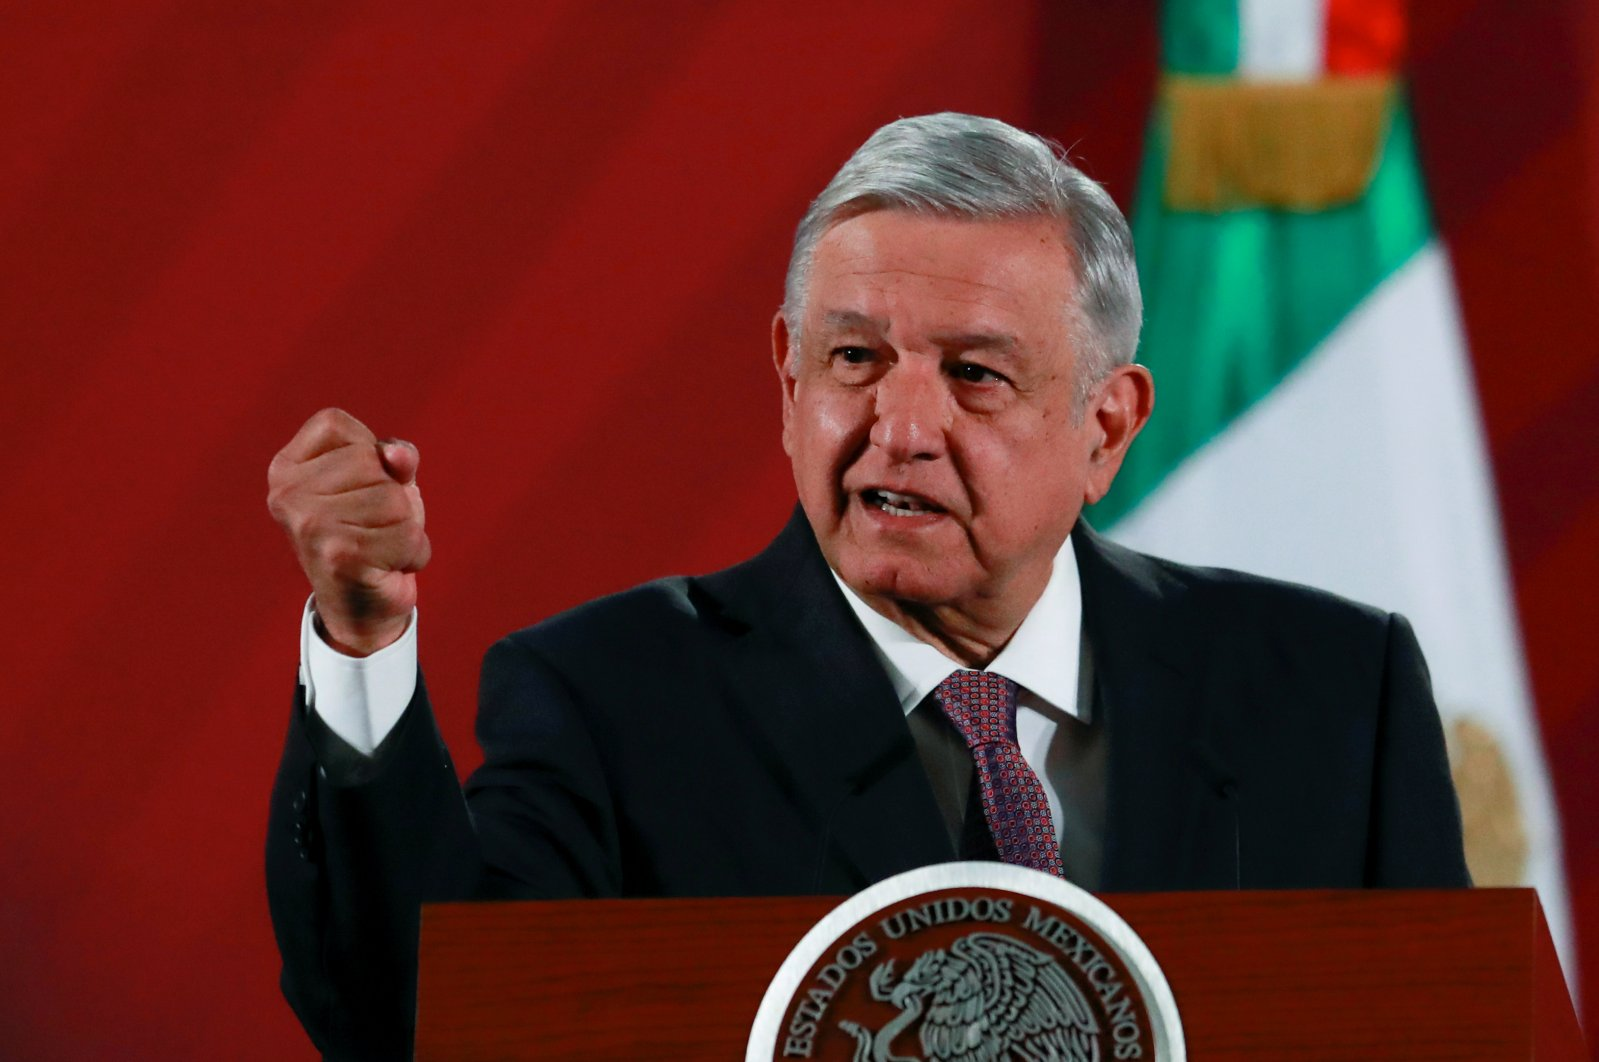 Mexican President Andres Manuel Lopez Obrador speaks during a news conference at the National Palace in Mexico City, Mexico, March 9, 2020. (Reuters Photo)